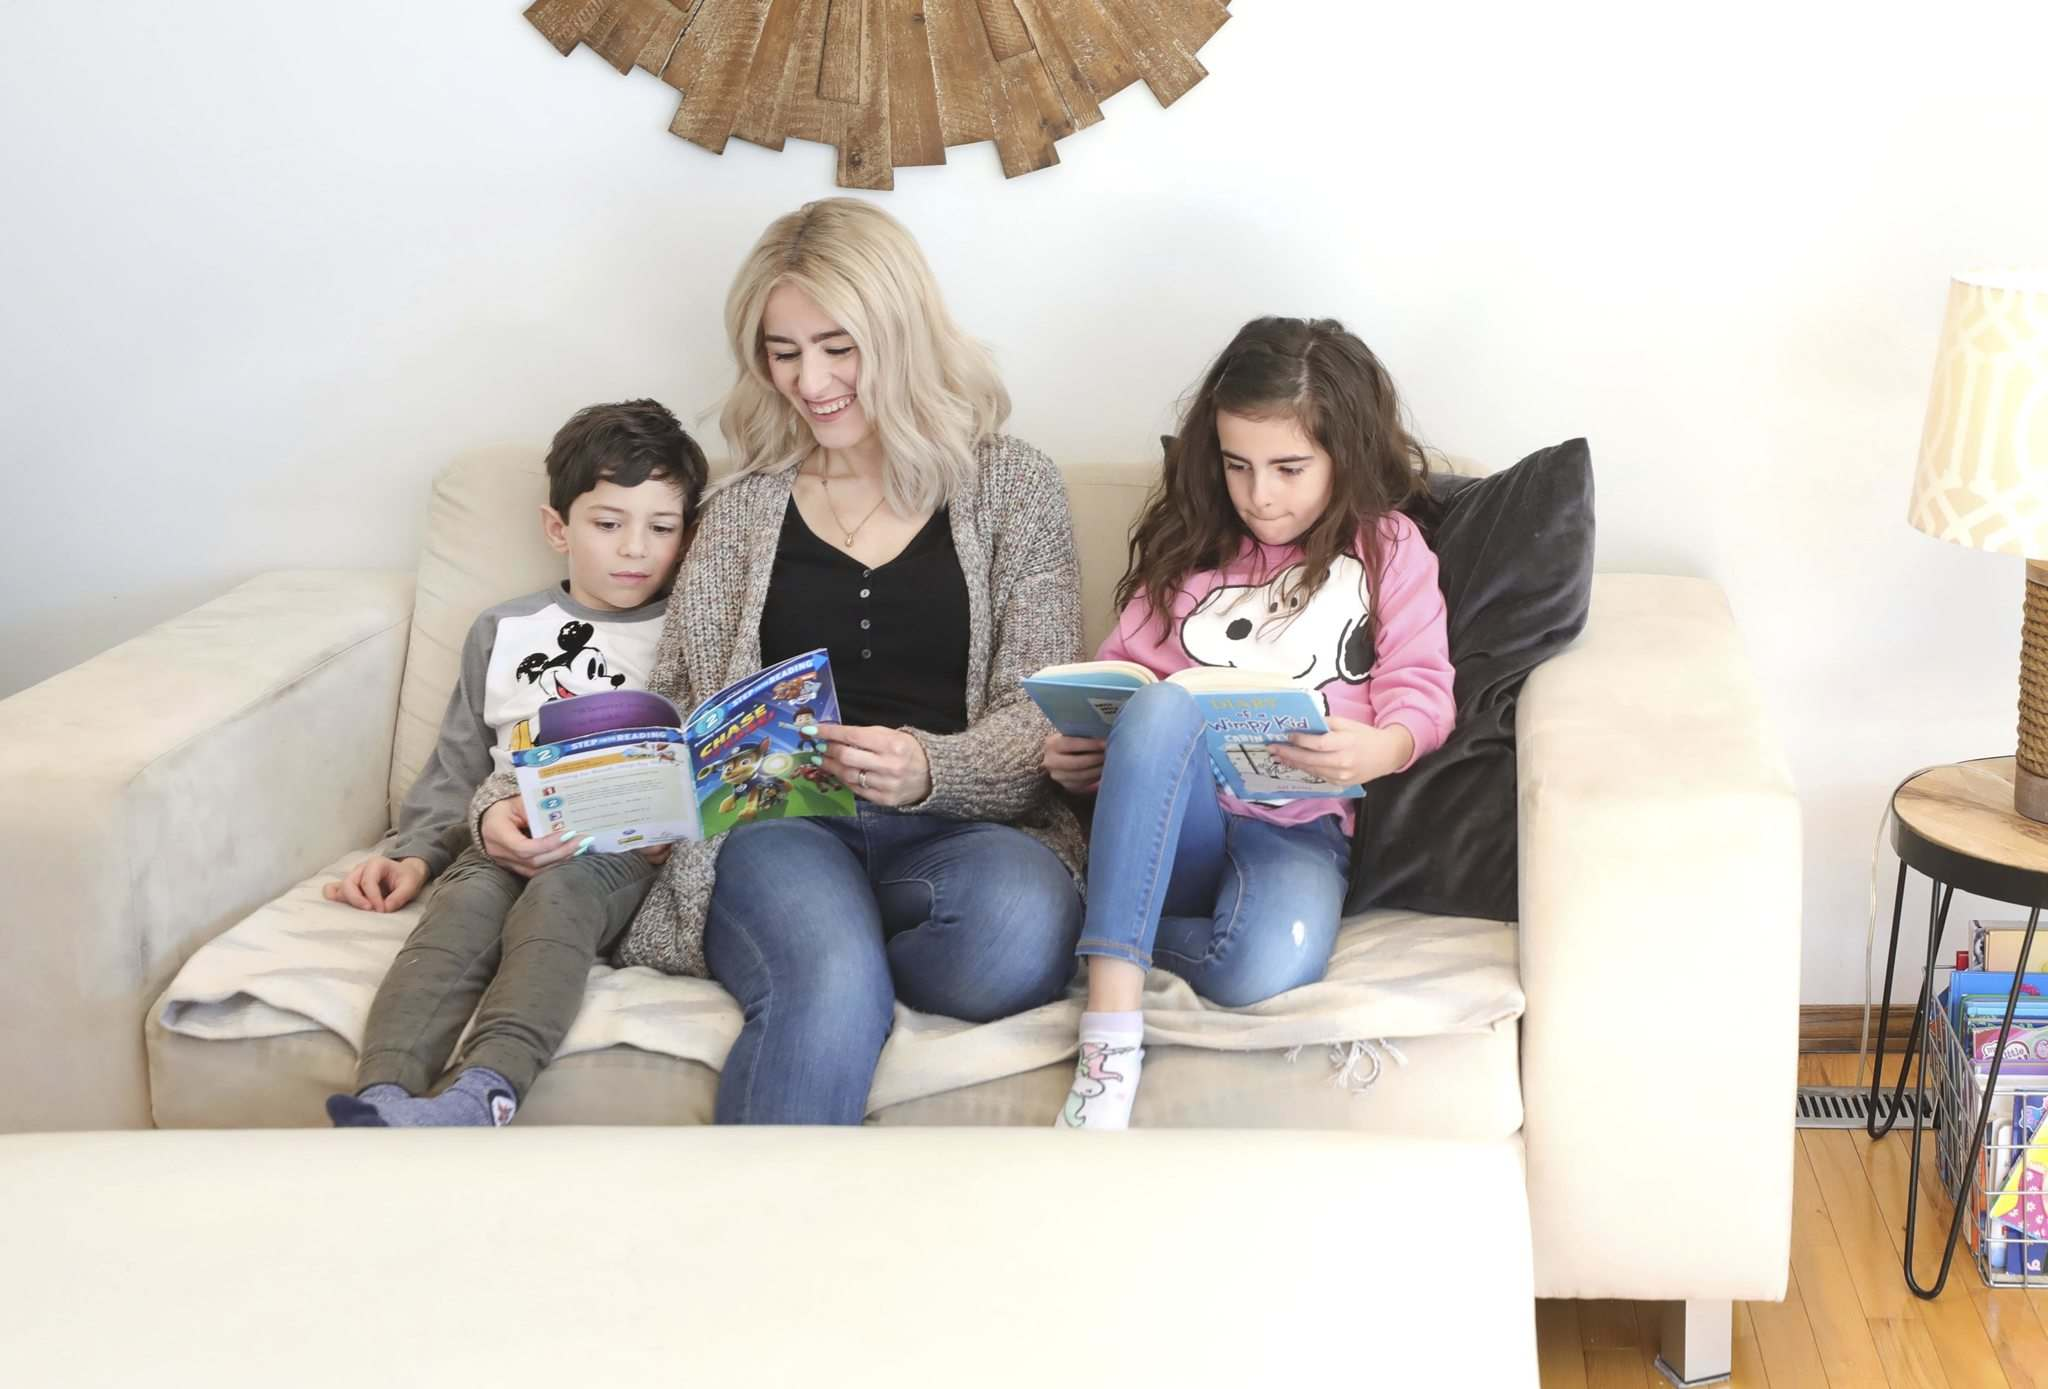 Catherine DiMarco reads at home with her son, Cristiano, and daughter, Gia, on Monday. (Ruth Bonneville / Winnipeg Free Press)